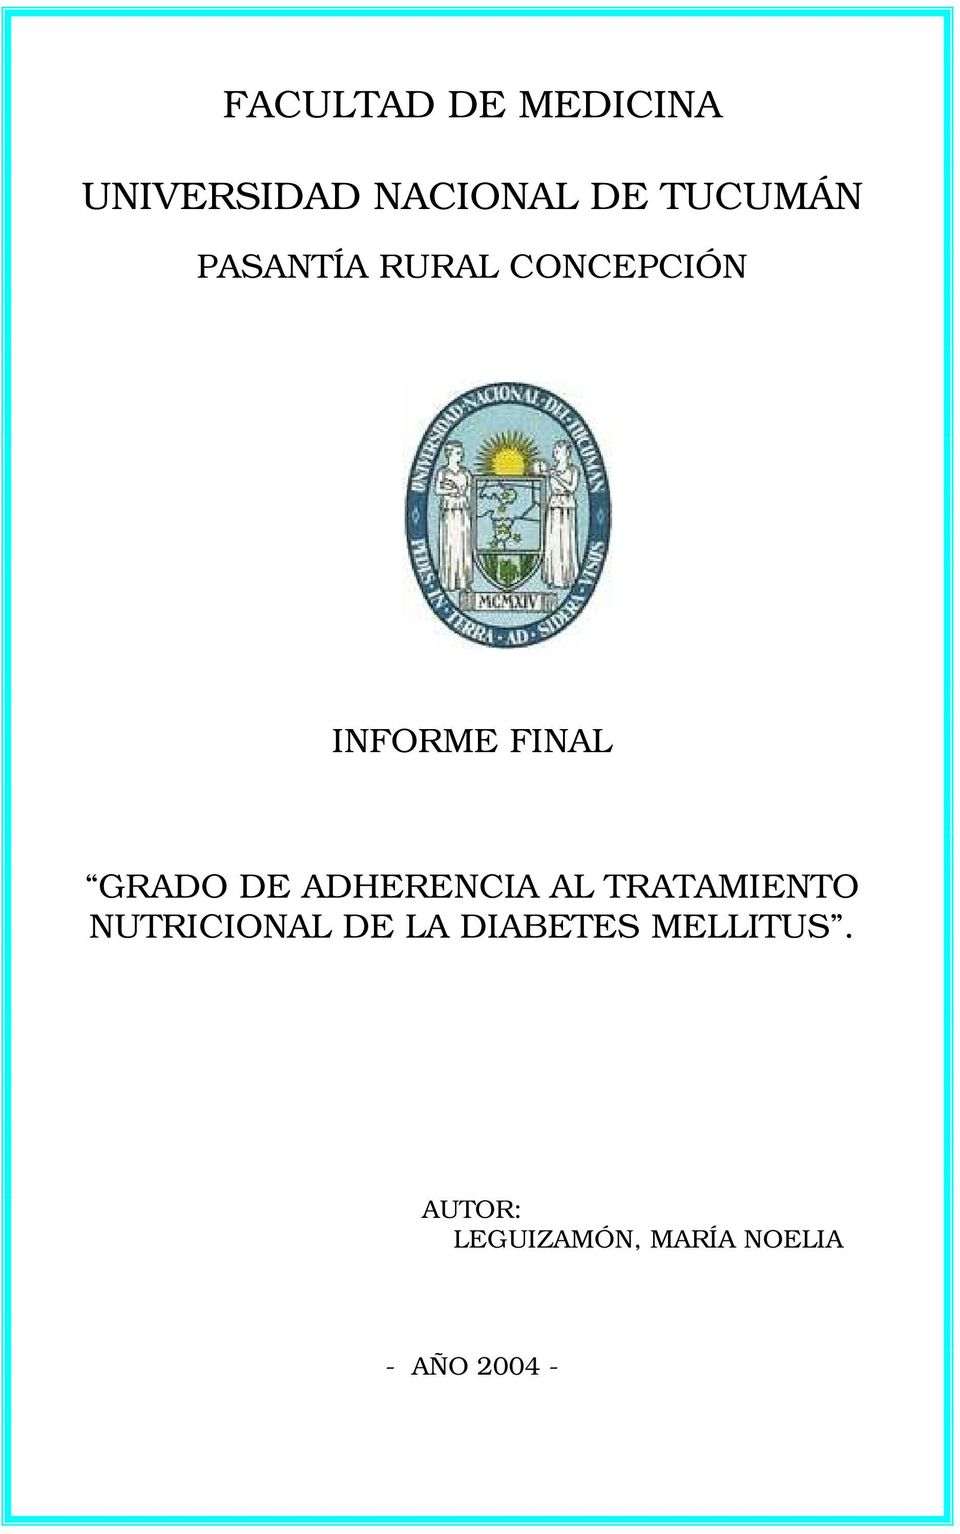 ADHERENCIA AL TRATAMIENTO NUTRICIONAL DE LA DIABETES